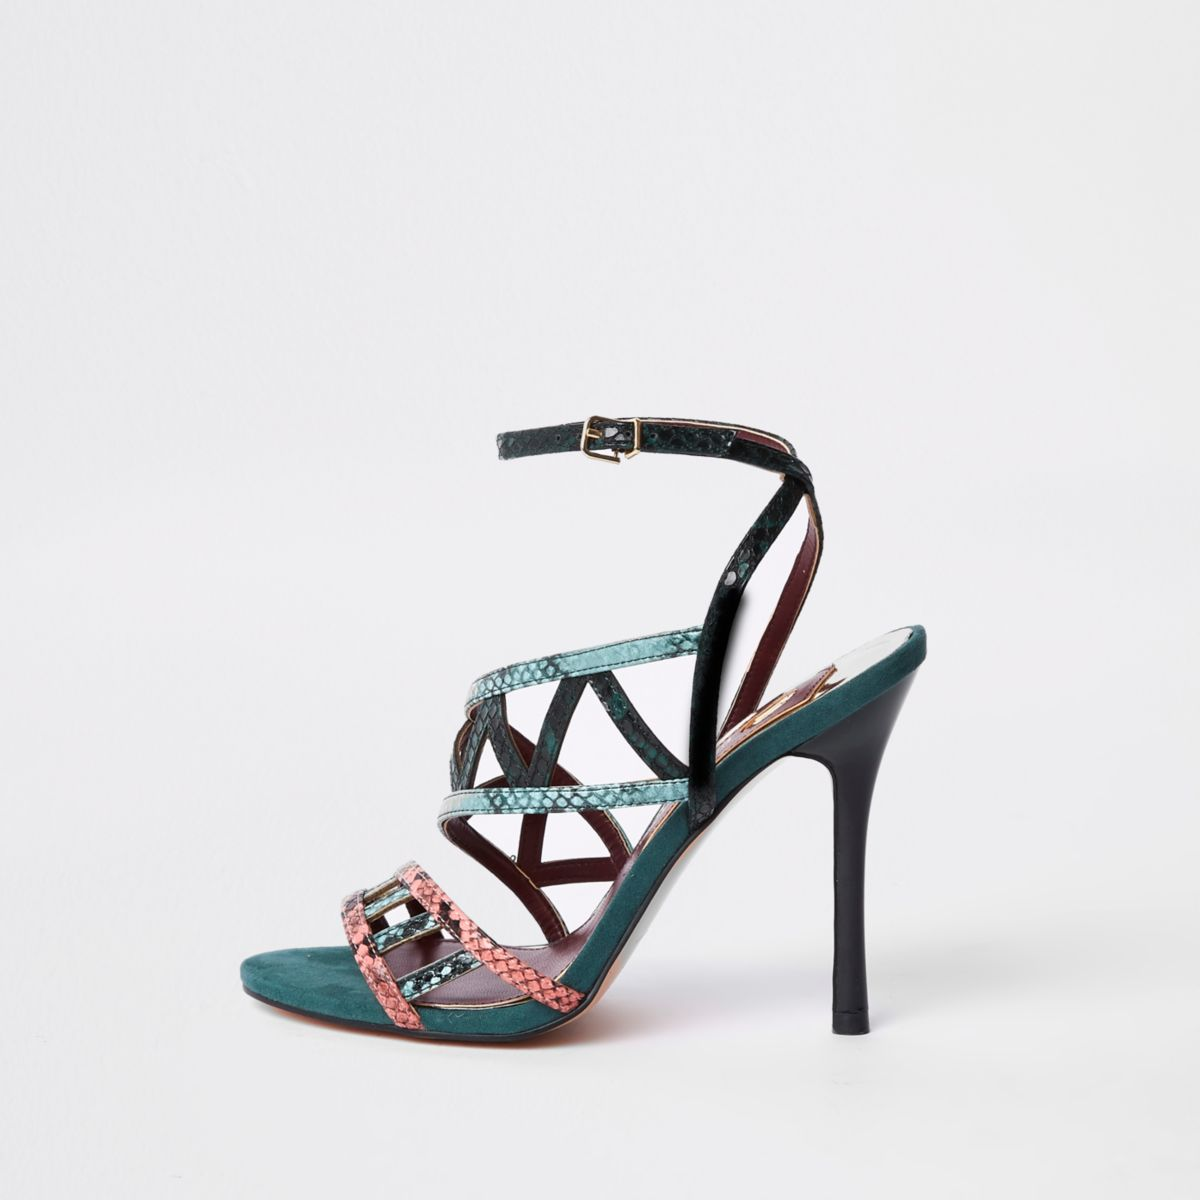 Green snake embossed strappy sandals